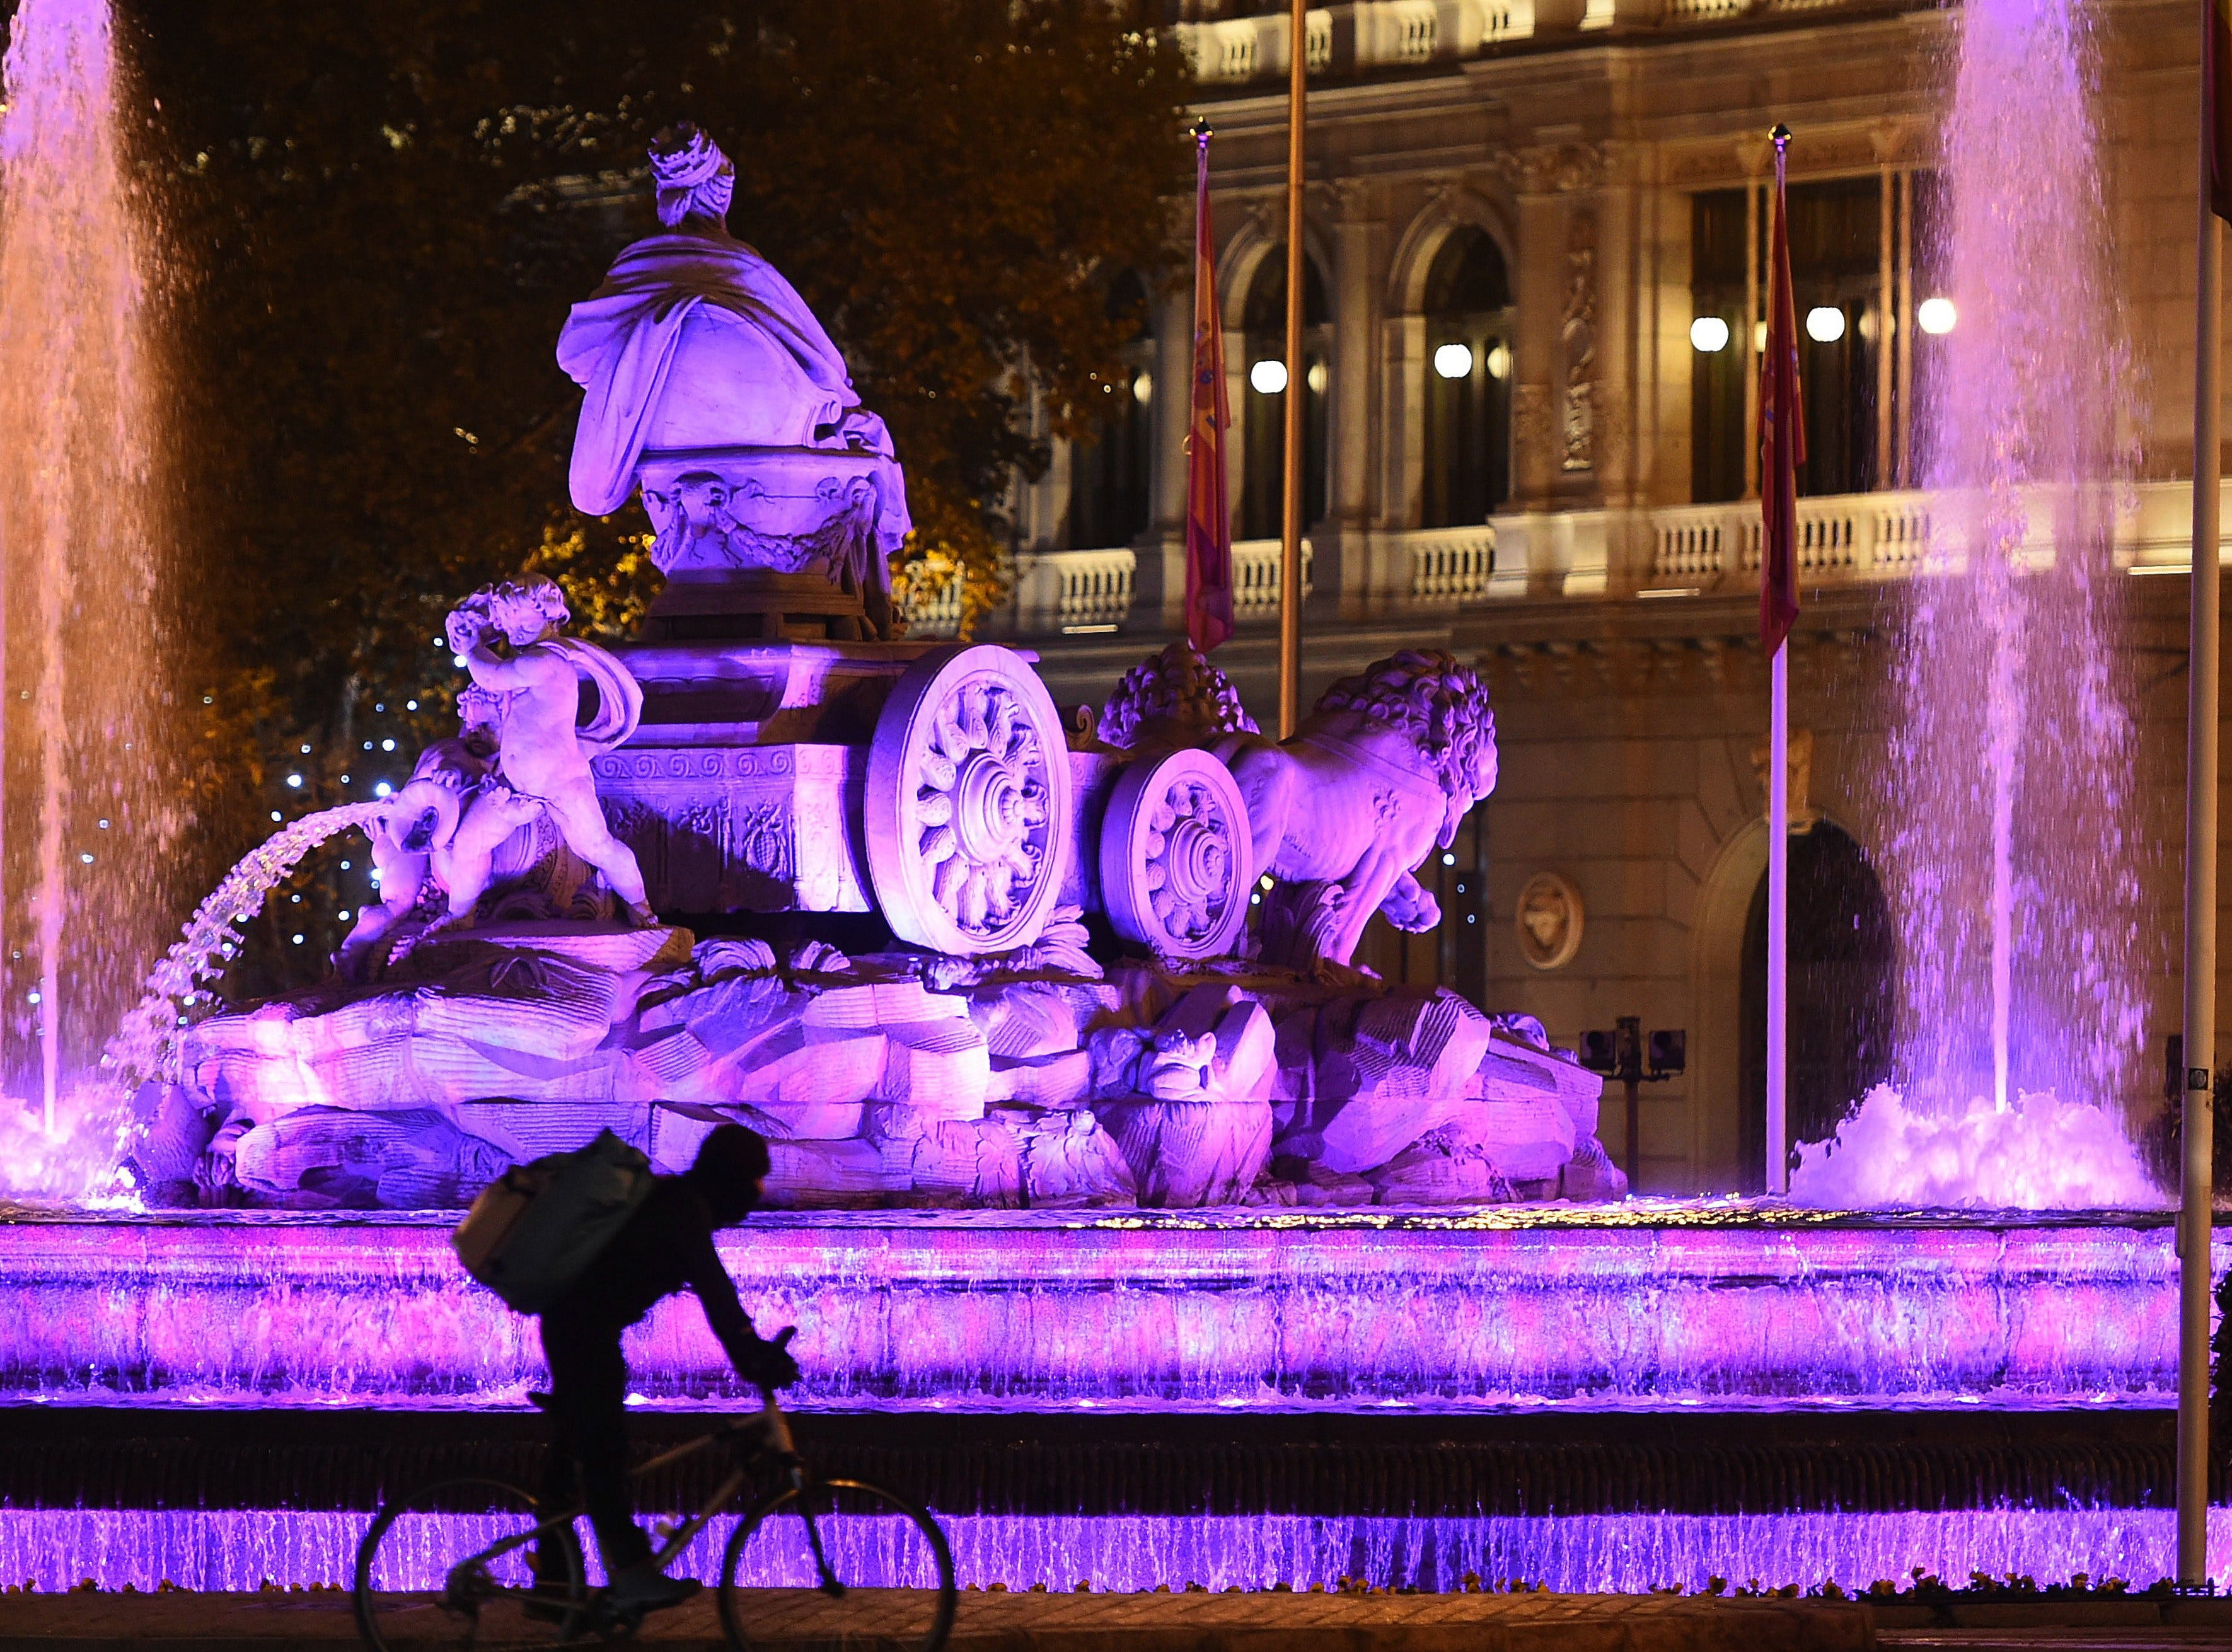 The Cibeles Fountain is lit up with purple lights on the occasion of the International Day for the Elimination of Violence against Women in Madrid, Spain, Nov. 24, 2018.